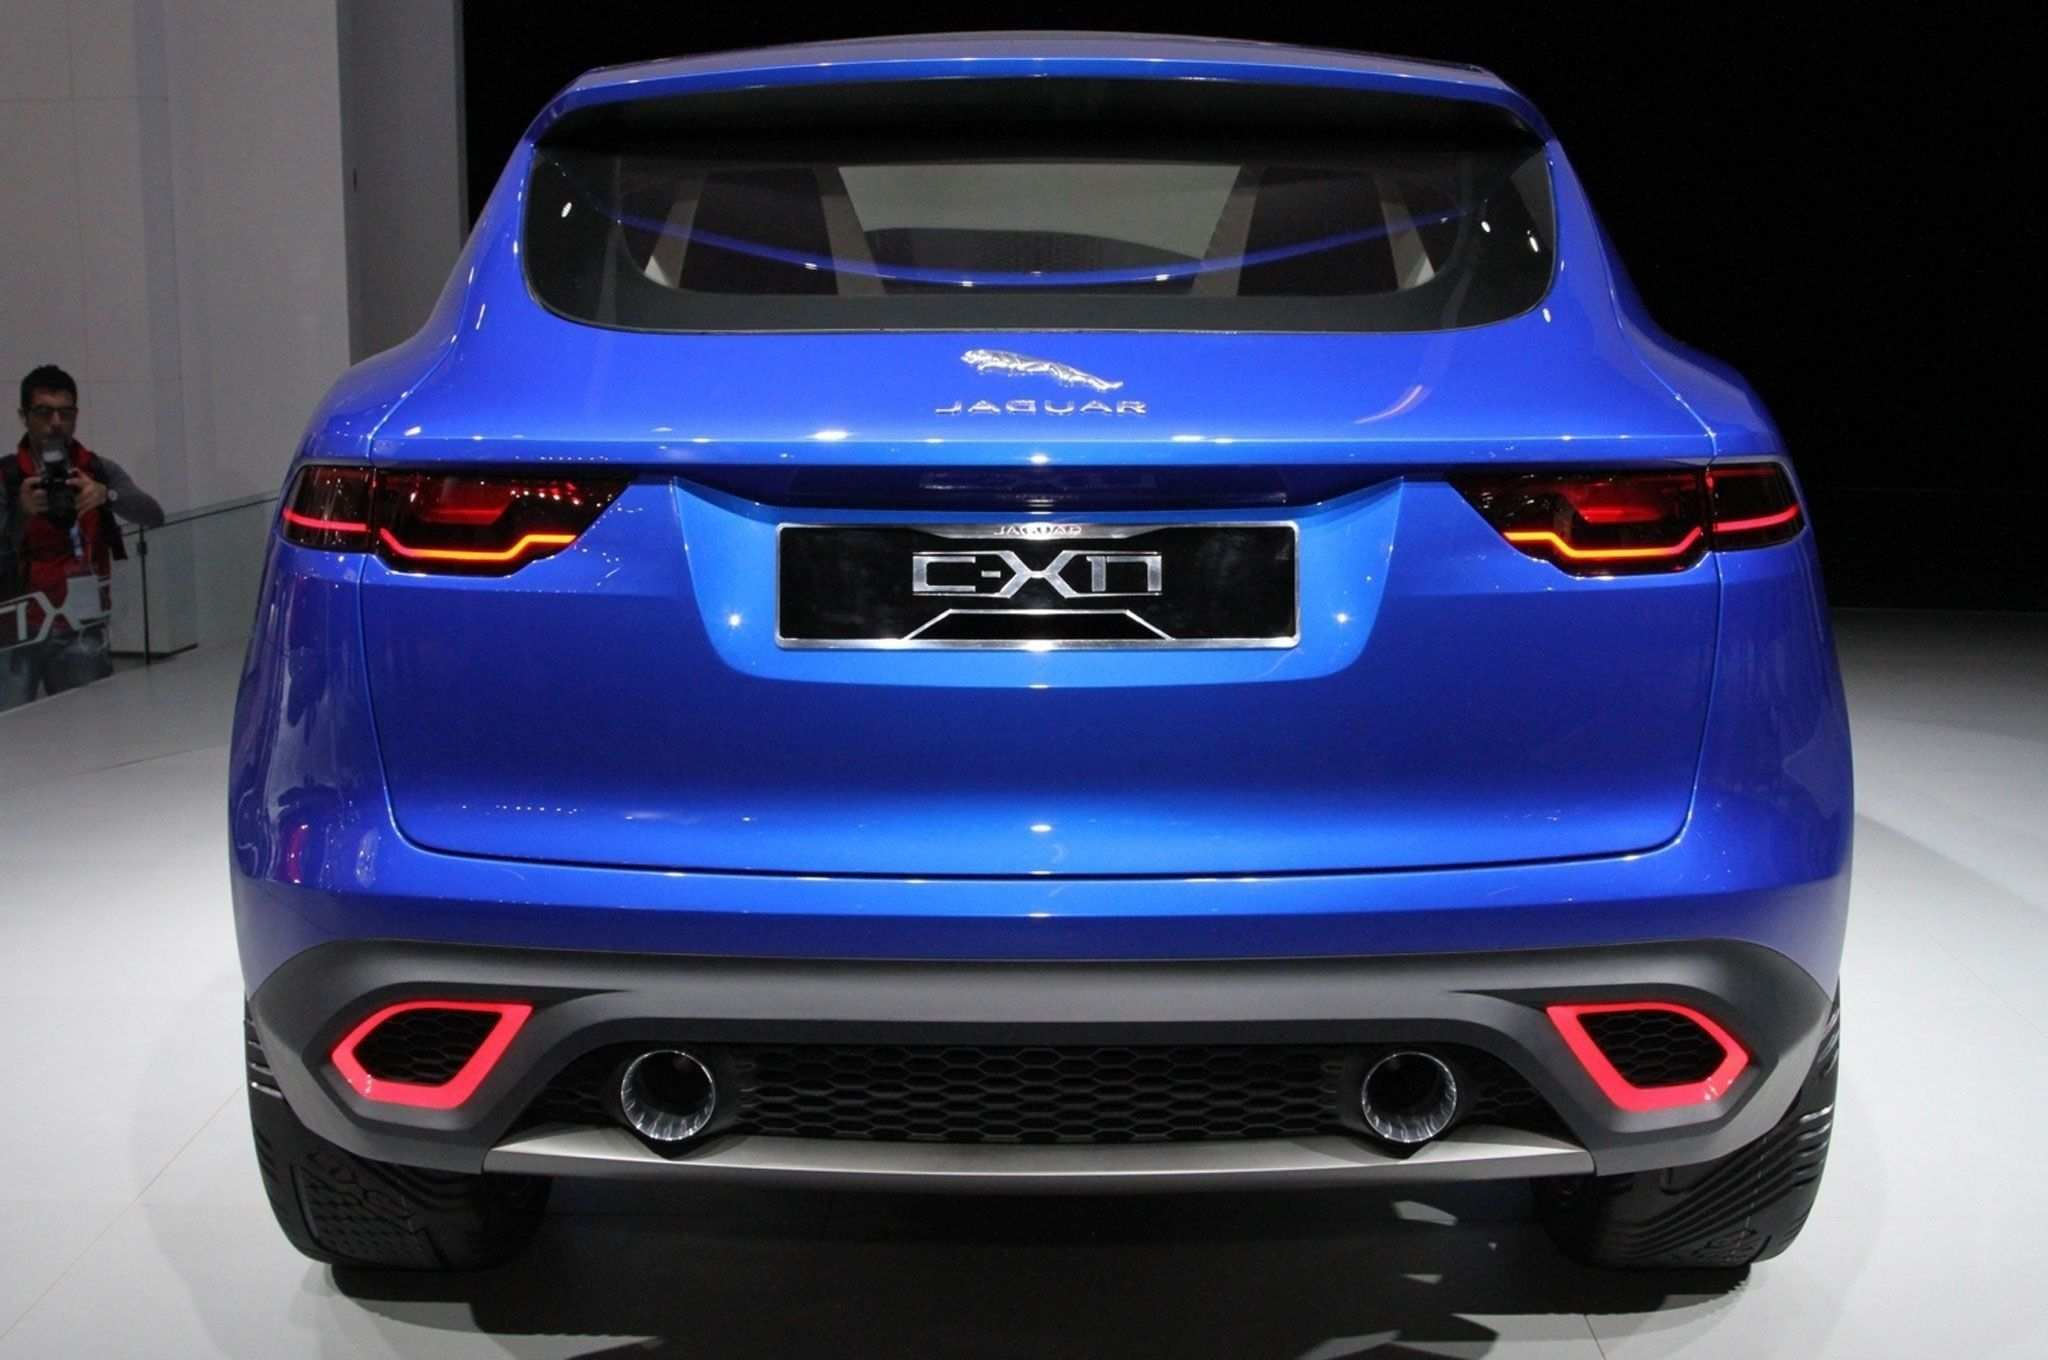 42 All New 2020 Jaguar C X17 Crossover Redesign for 2020 Jaguar C X17 Crossover